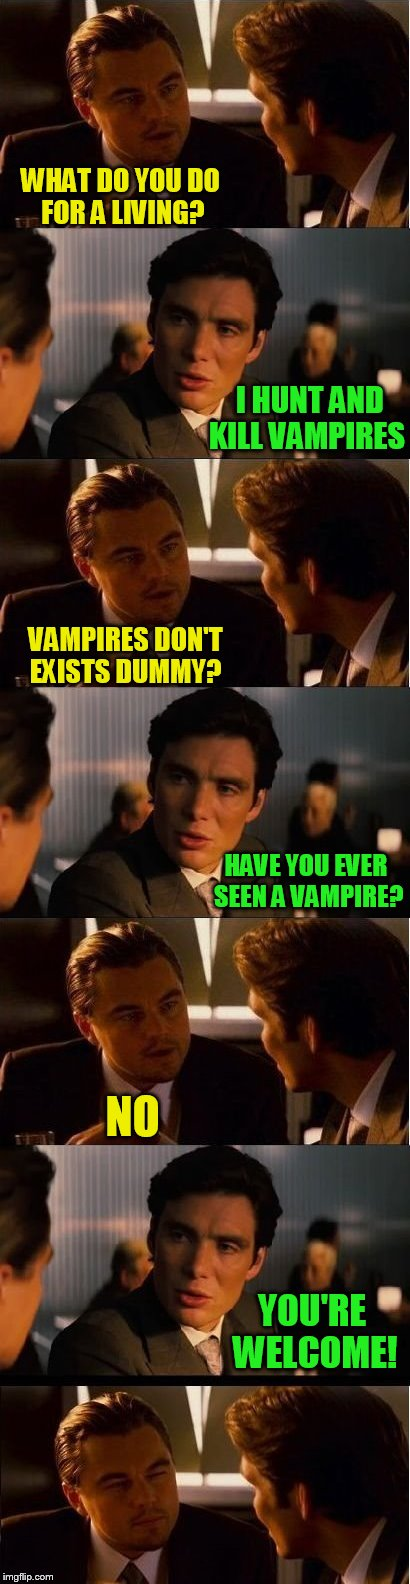 Inception | WHAT DO YOU DO FOR A LIVING? I HUNT AND KILL VAMPIRES VAMPIRES DON'T EXISTS DUMMY? HAVE YOU EVER SEEN A VAMPIRE? NO YOU'RE WELCOME! | image tagged in memes,inception,vampire,vampire hunter,funny memes,youre welcome | made w/ Imgflip meme maker